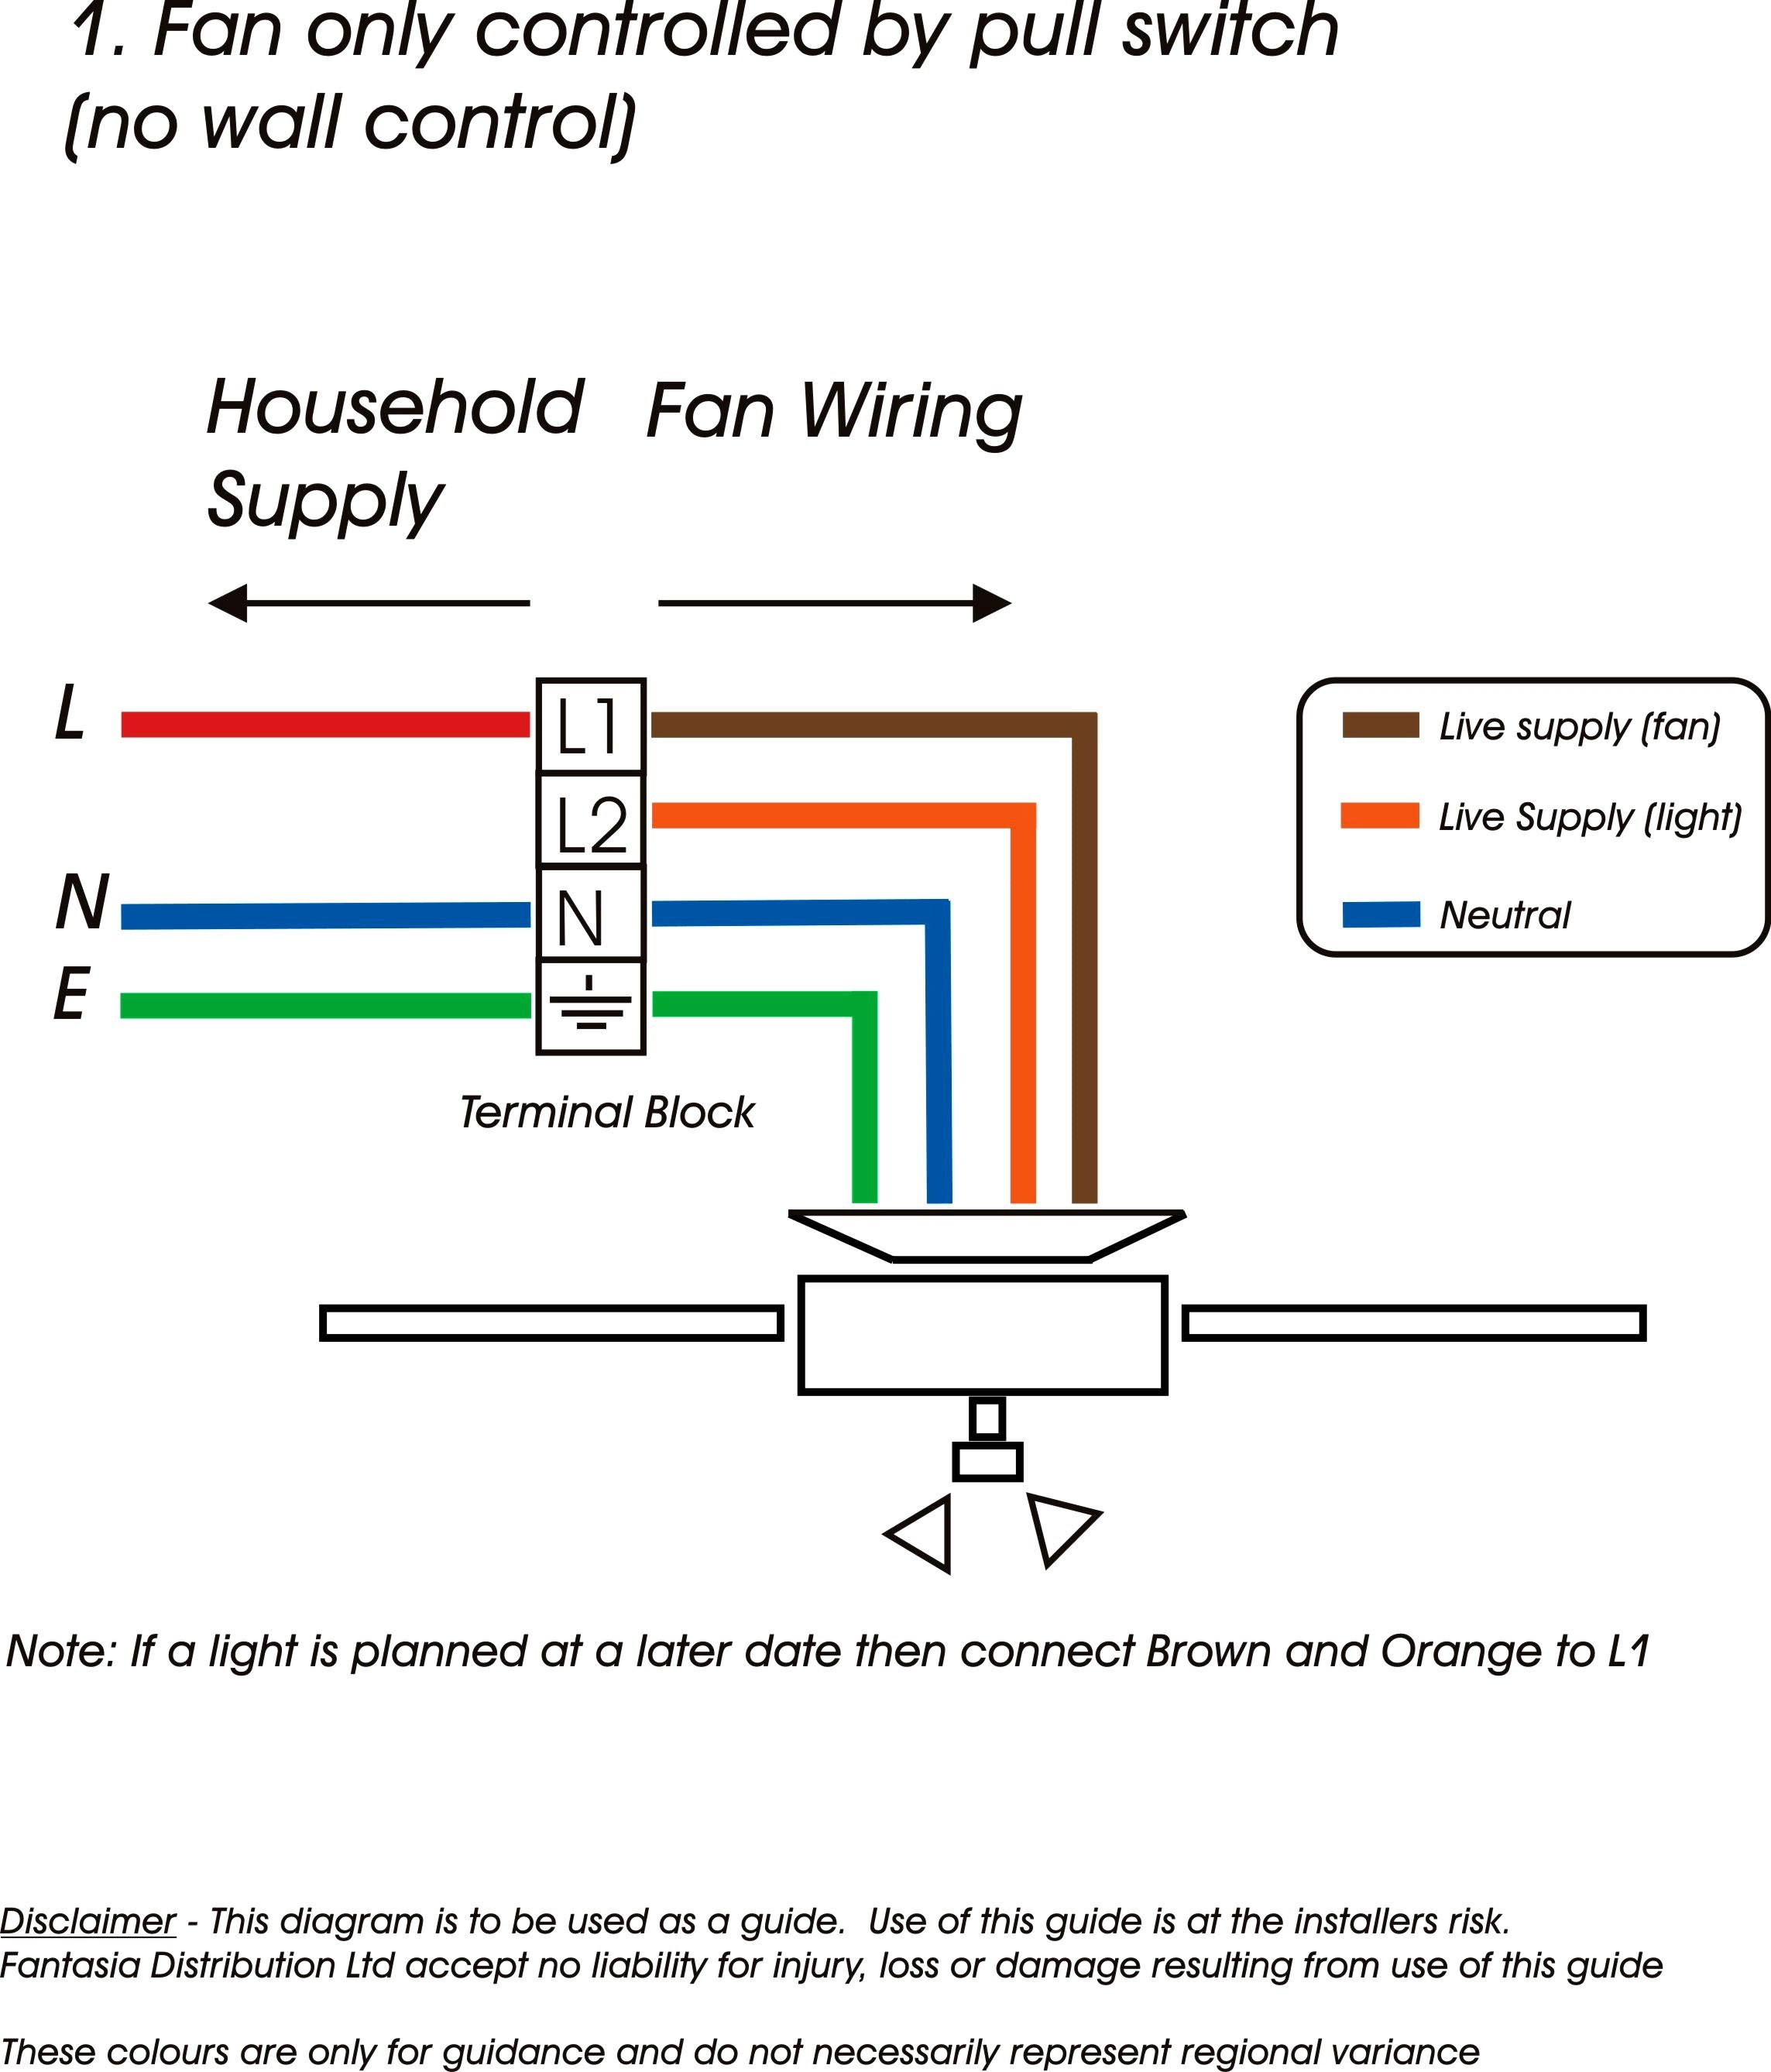 ceiling fan control switch wiring diagram Download-Ceiling Fan 3 Speed Wall Switch Wiring Diagram Ceiling Fan Pull Switch Chain 3 Speed 14-c